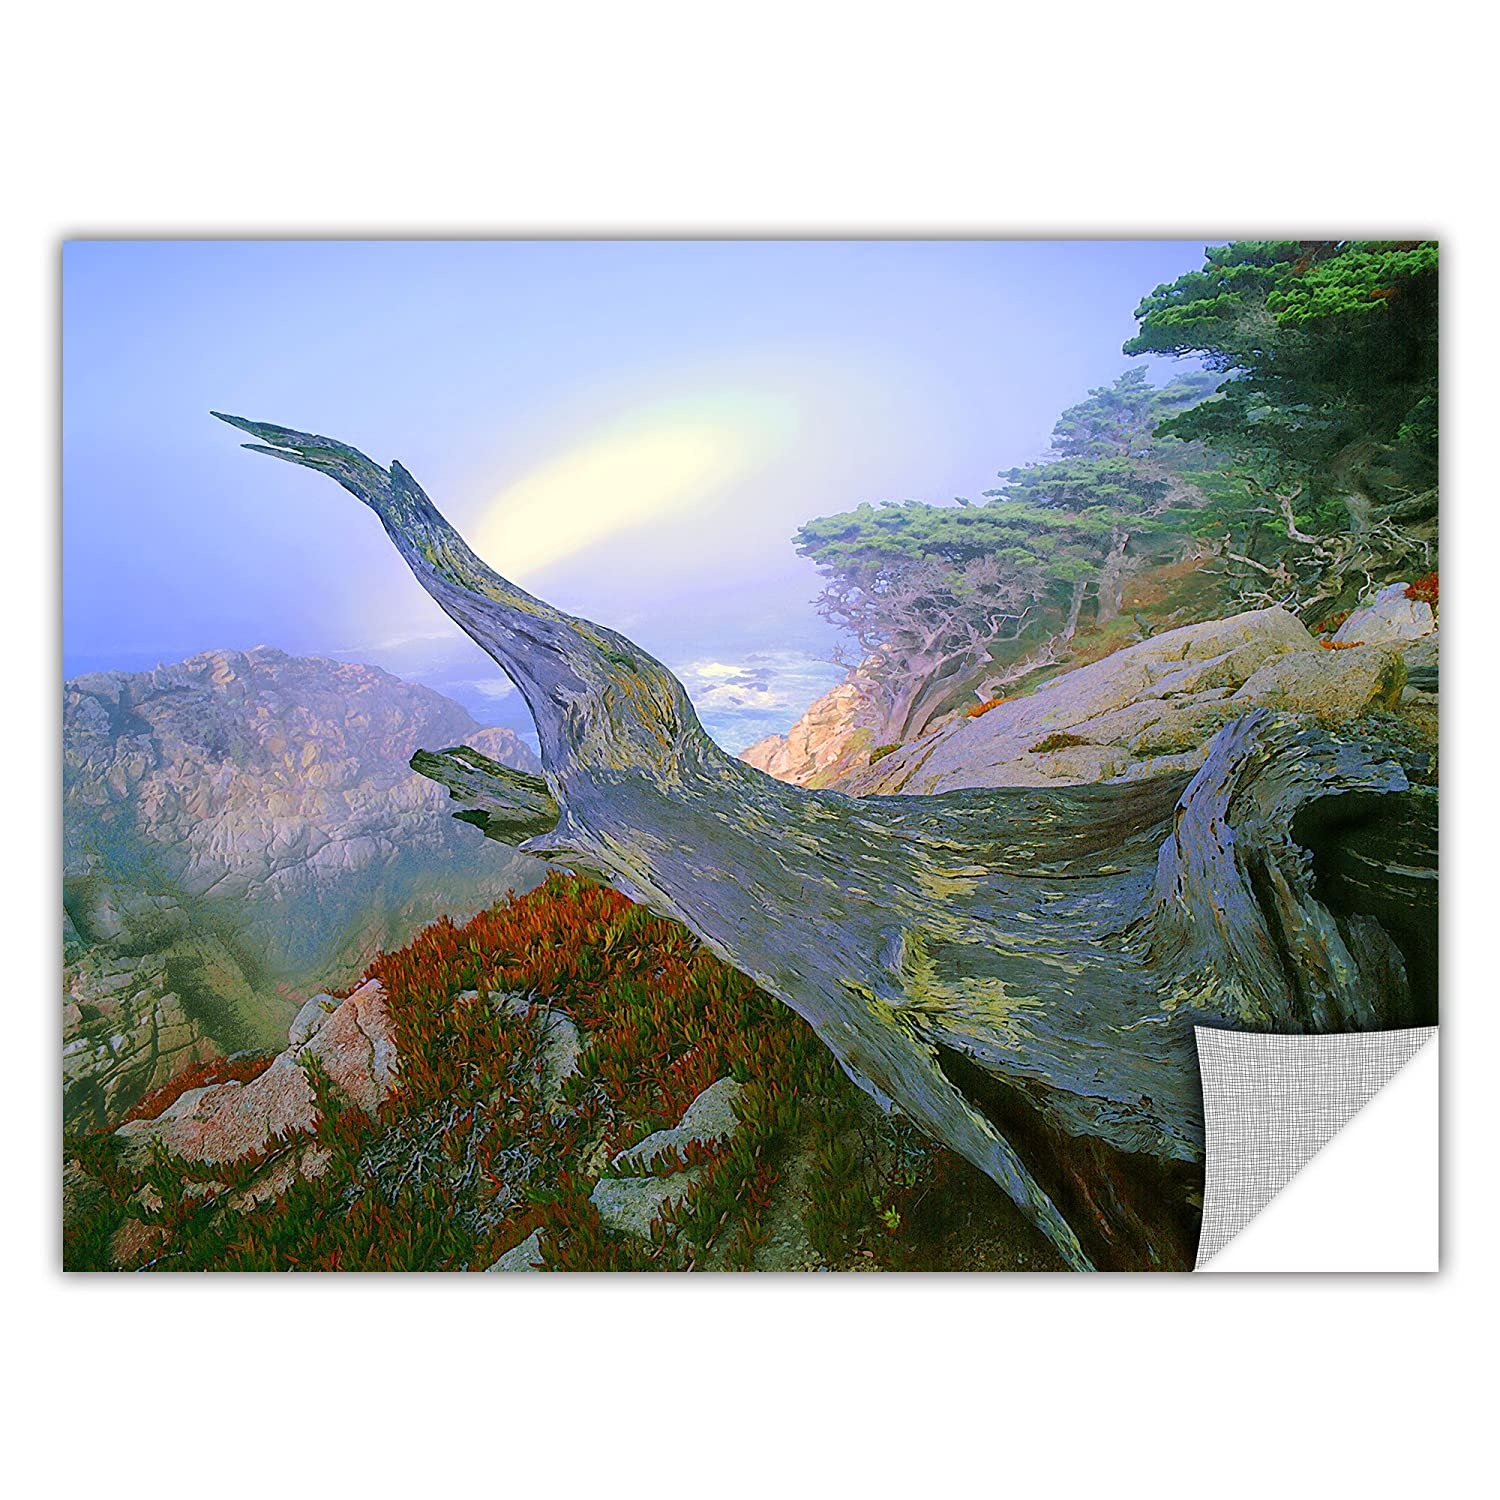 24 by 32-Inch ArtWall Appealz Dean Uhlinger Like a Flame Removable Graphic Wall Art